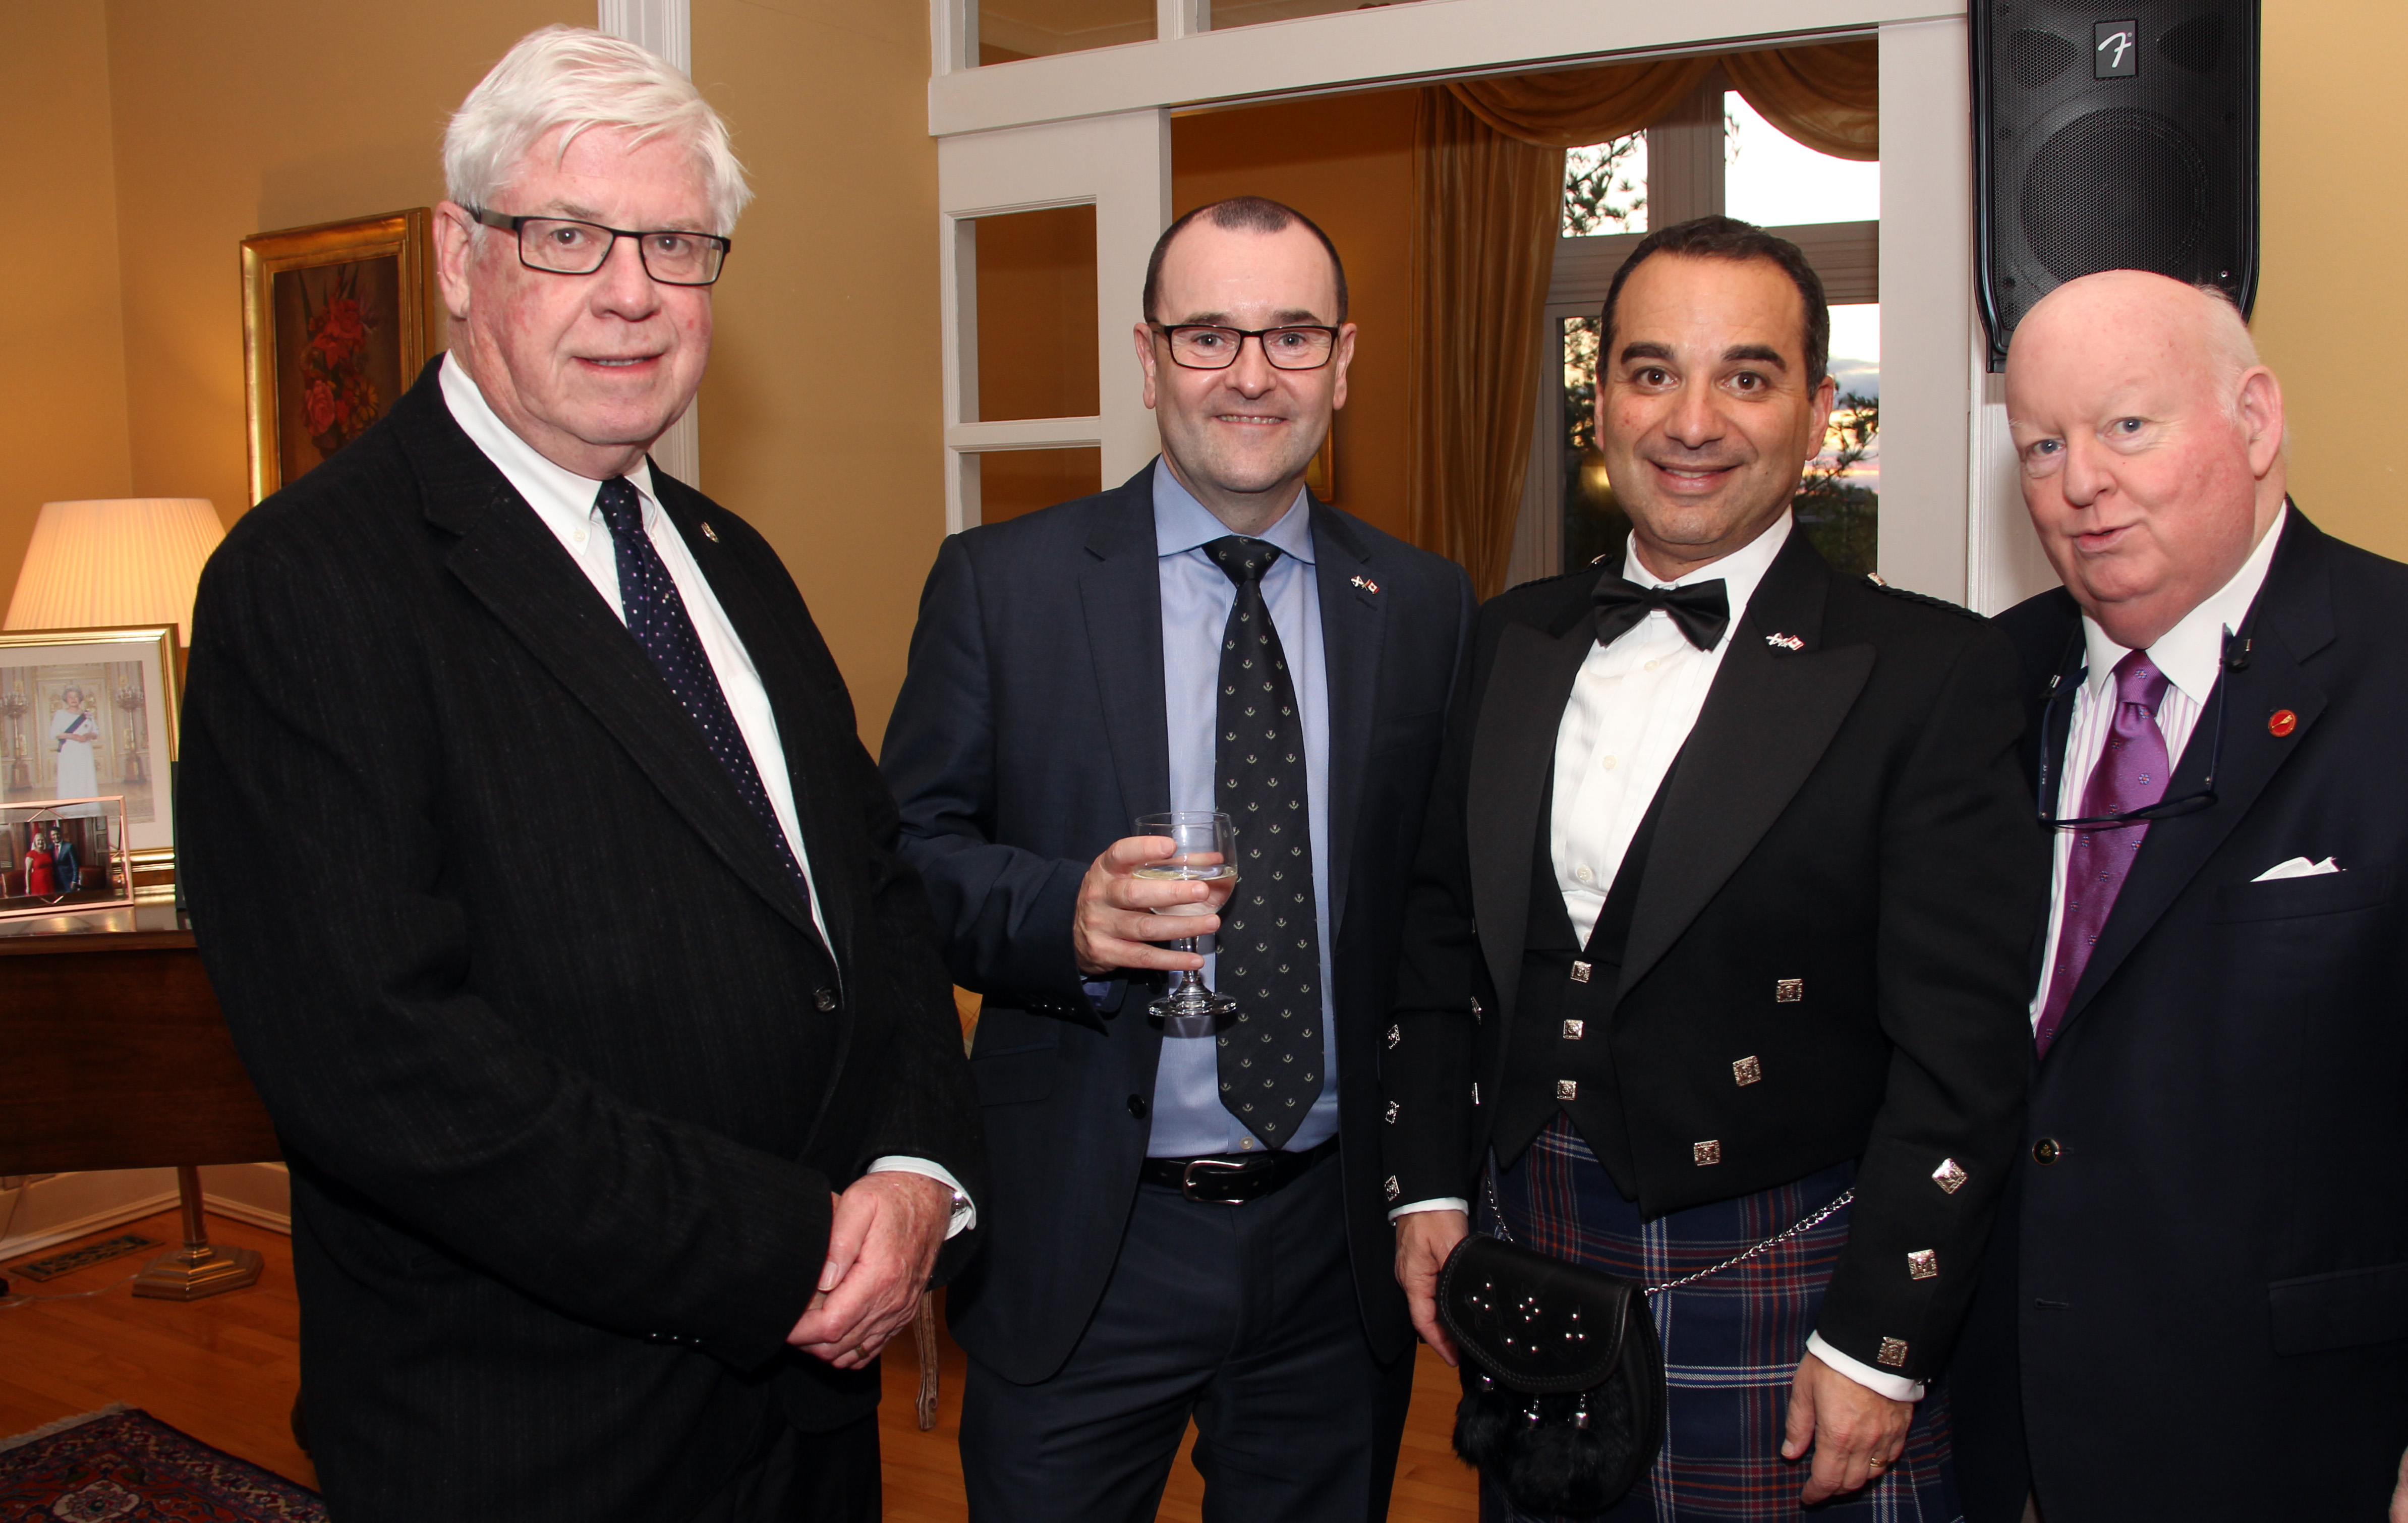 150 Years of Scotland and Canada Friendship